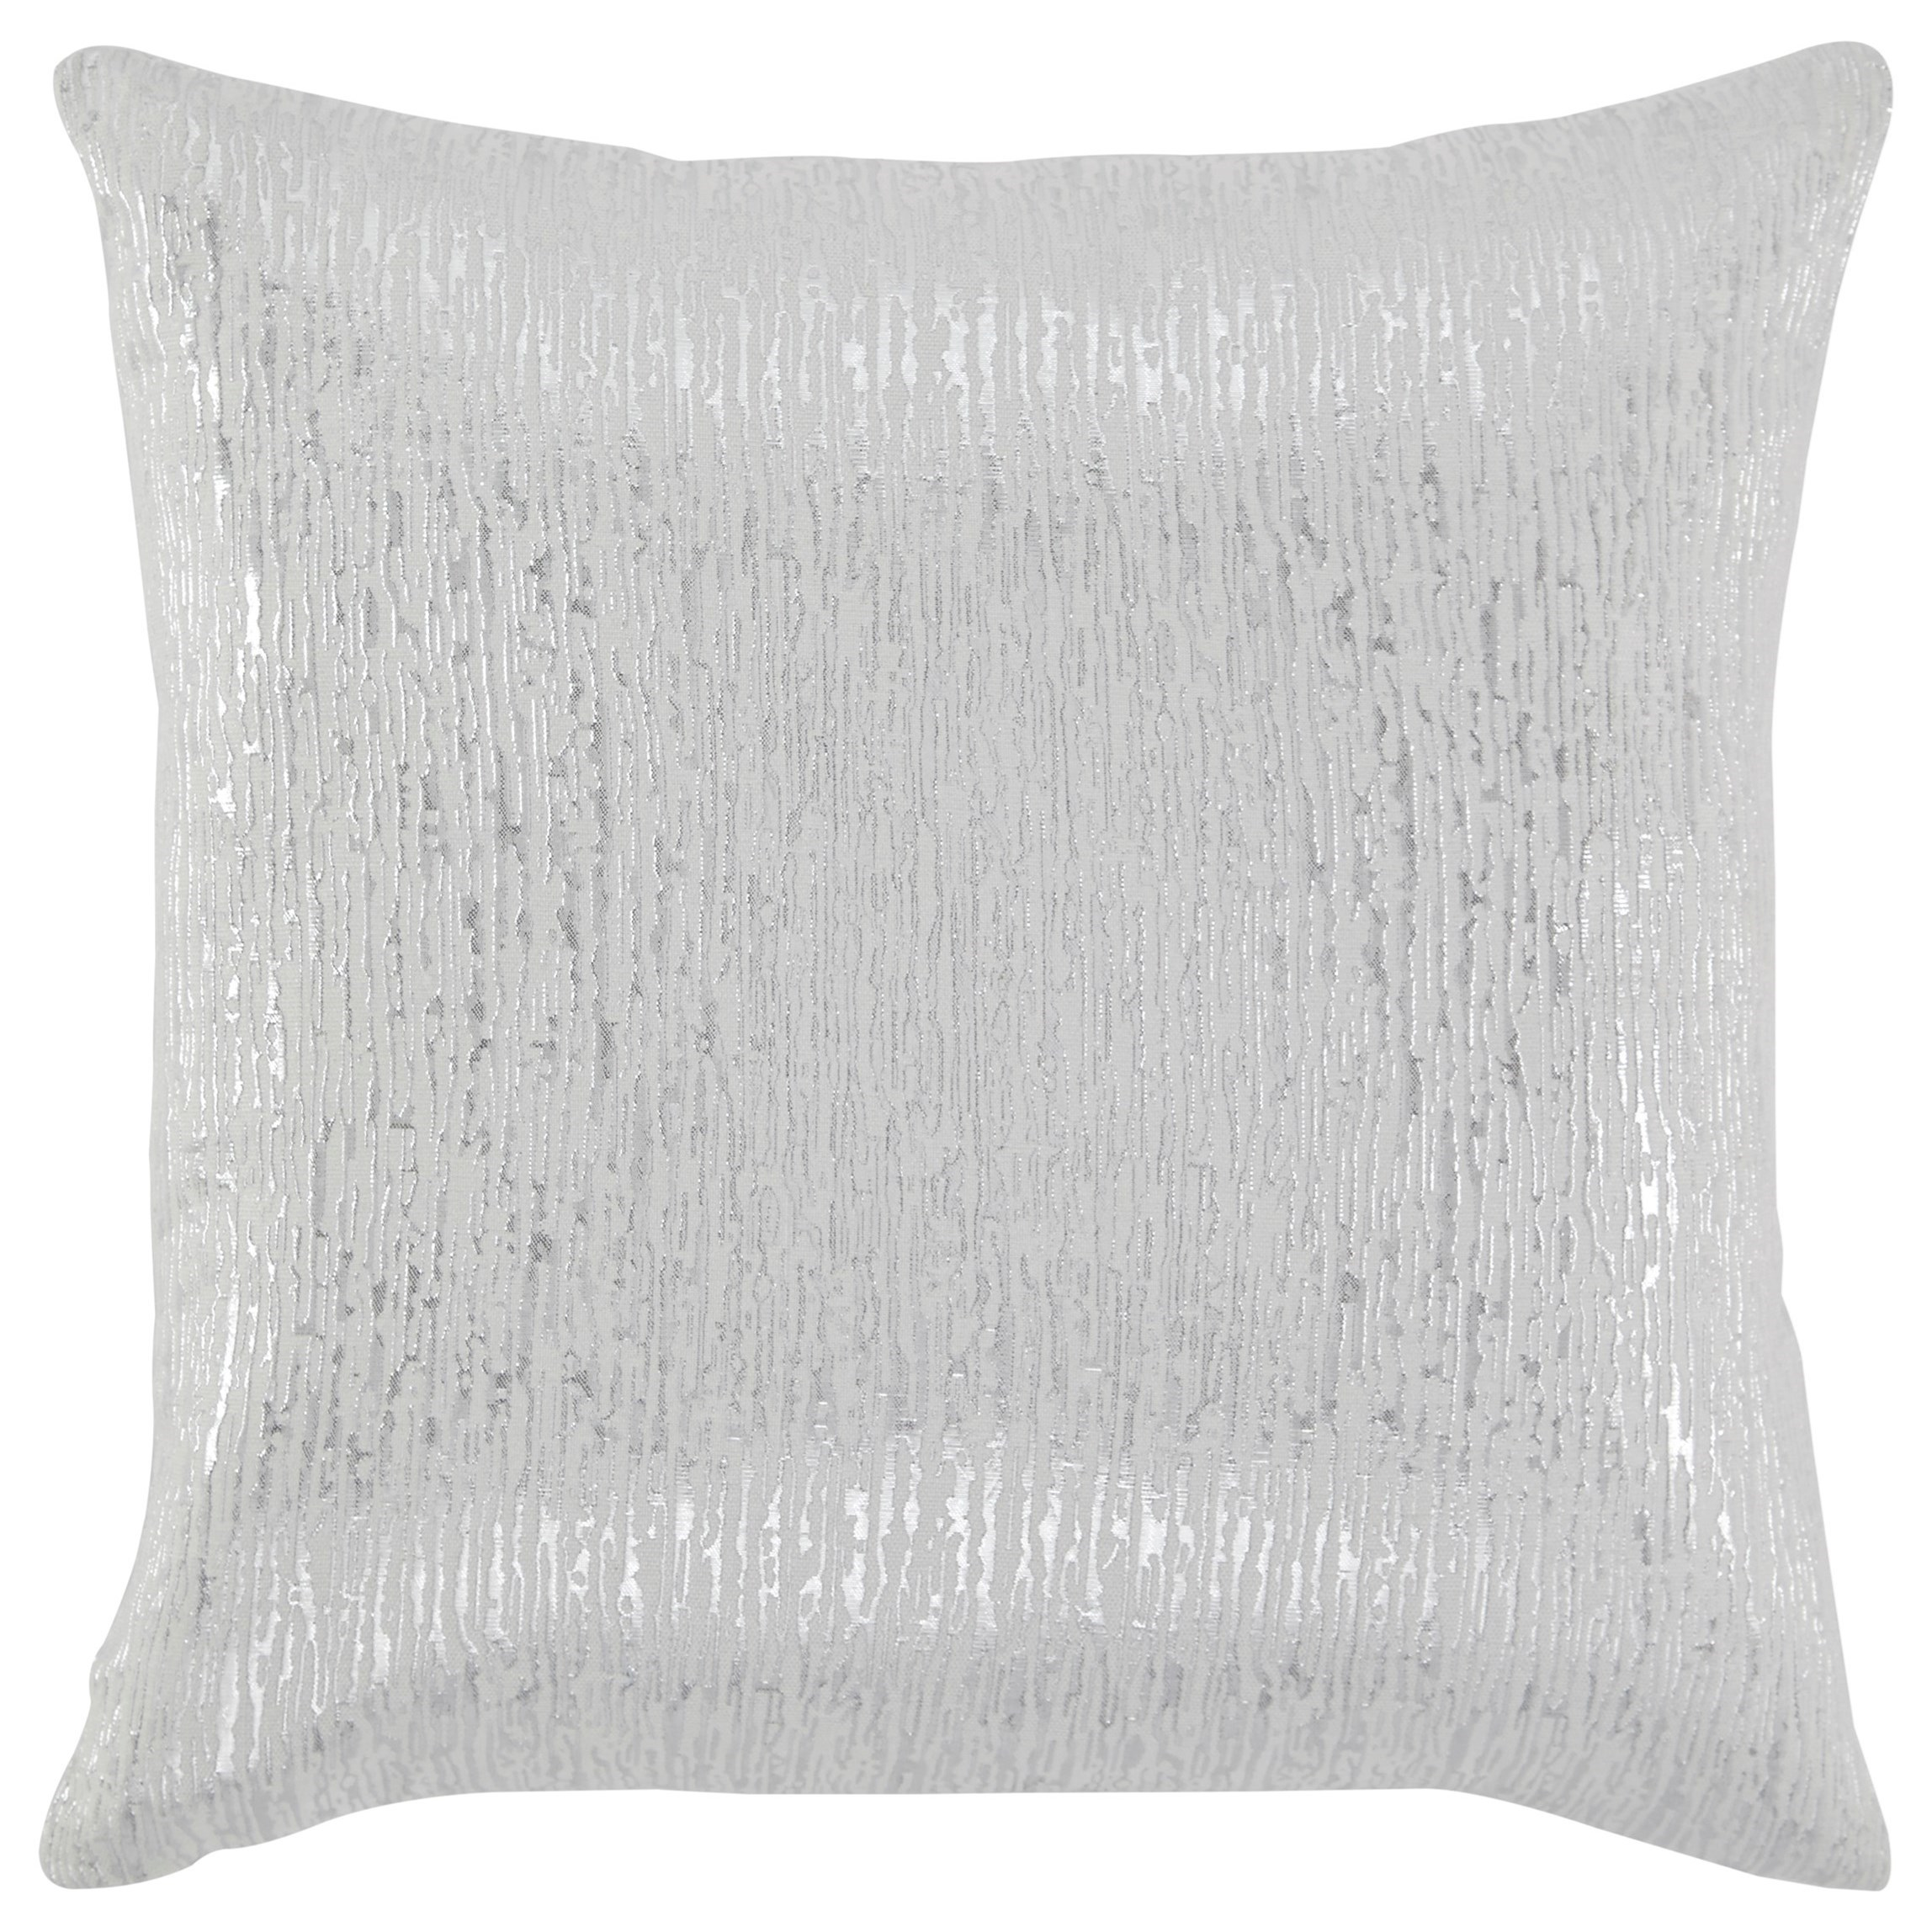 Signature Design by Ashley Pillows Tacey Off White/Silver Pillow - Item Number: A1000478P